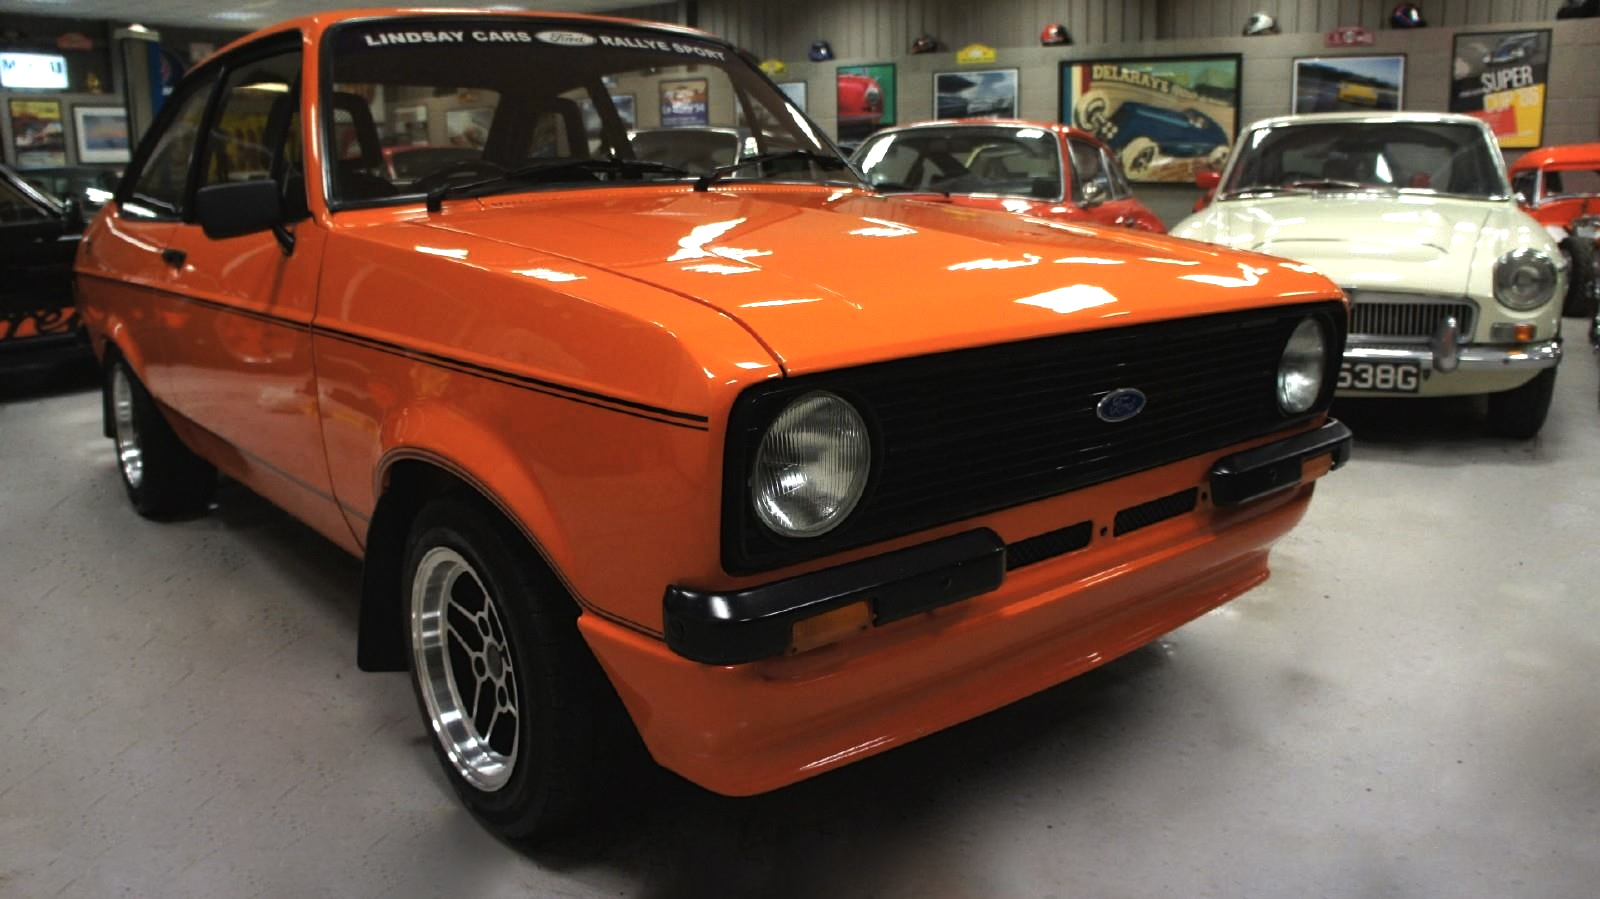 new stock 1980 ford escort rs 2000 in show condition border reiversborder reivers. Black Bedroom Furniture Sets. Home Design Ideas